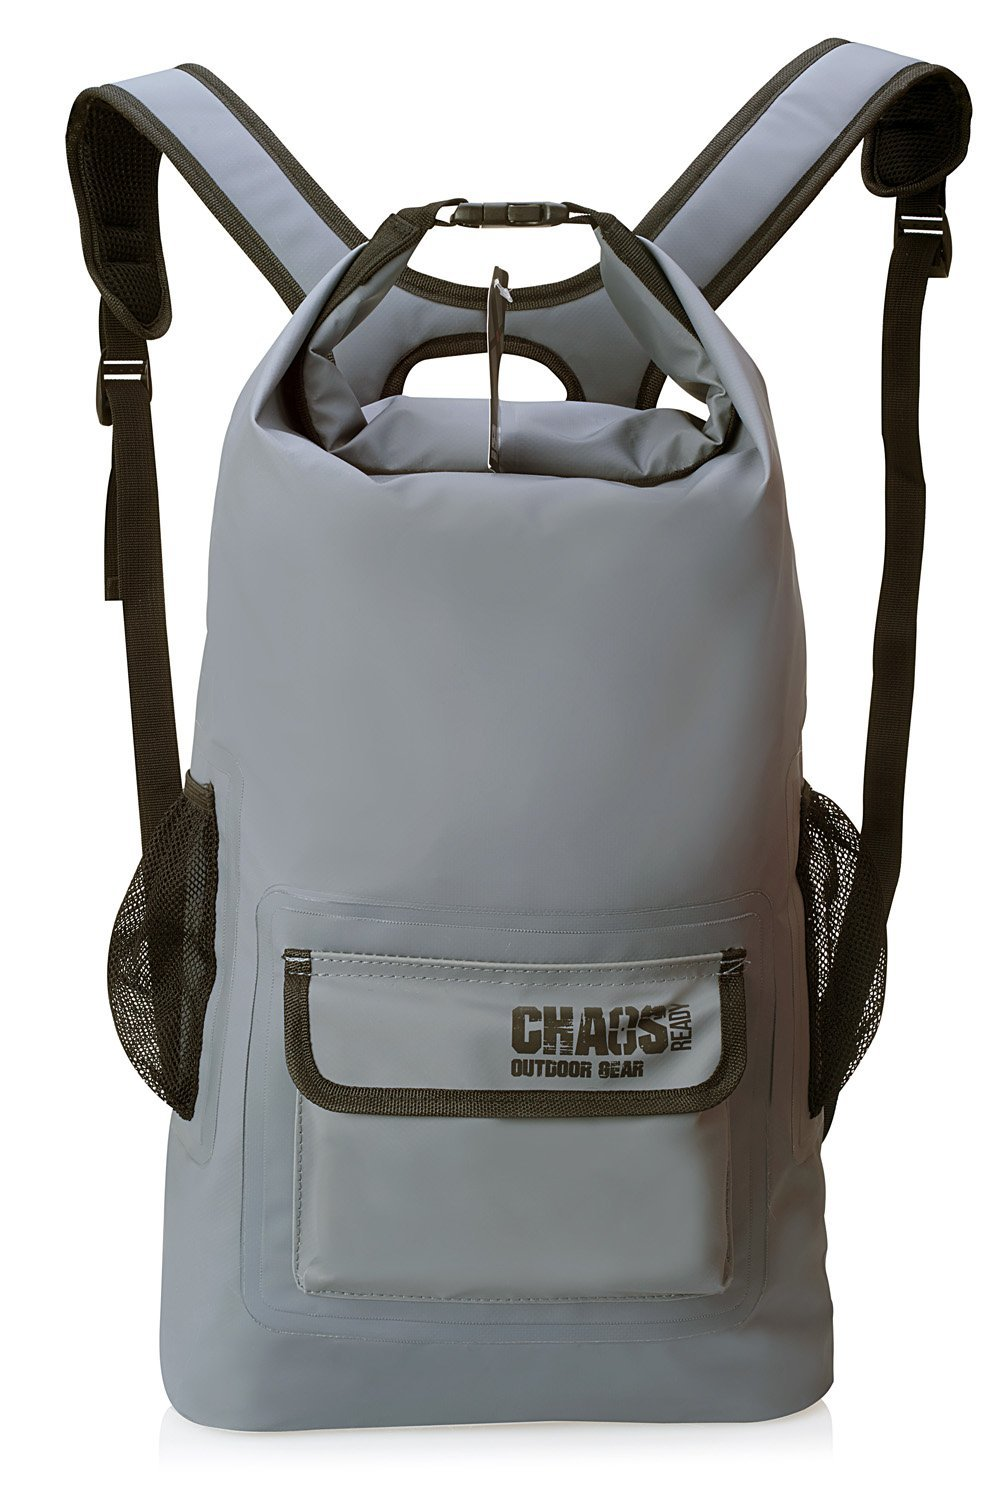 Chaos Ready® Waterproof Backpack